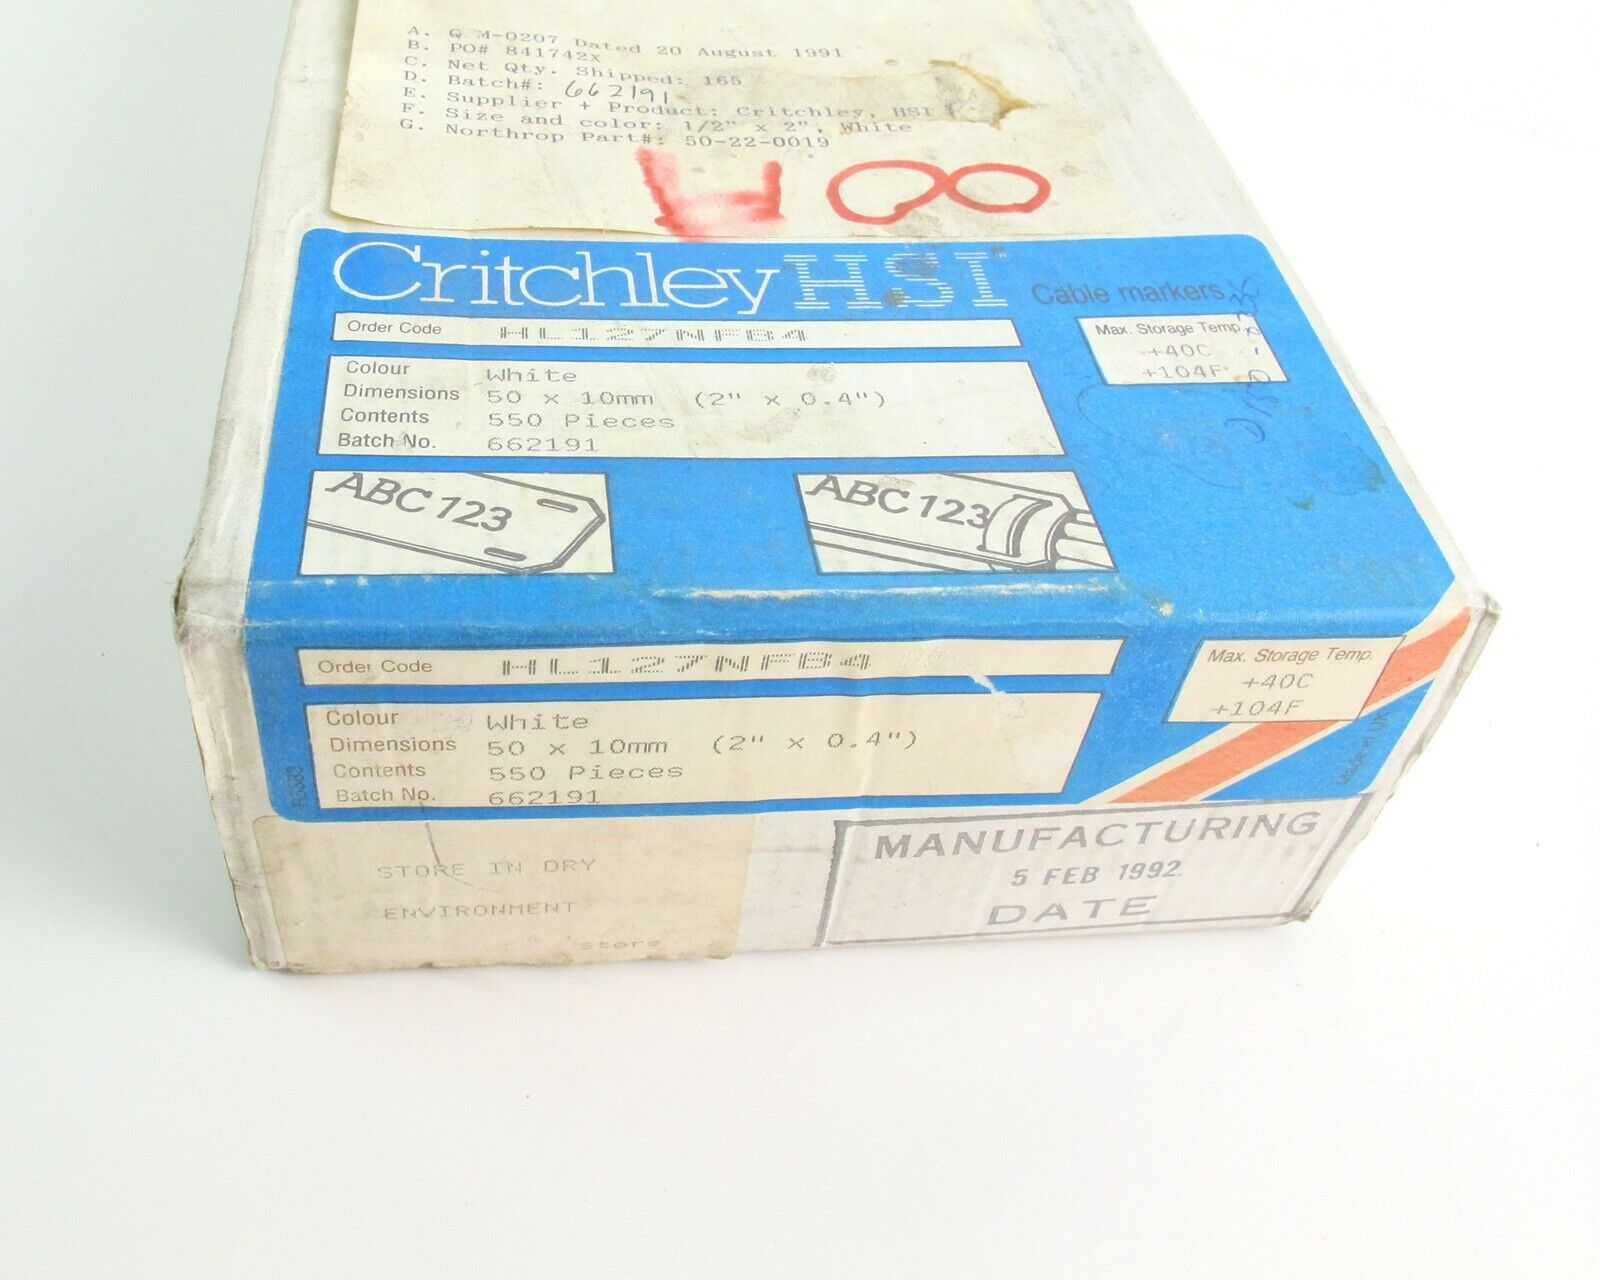 Critchley HSI HL127NFB4 White Cable Markers 50x10mm 550pcs